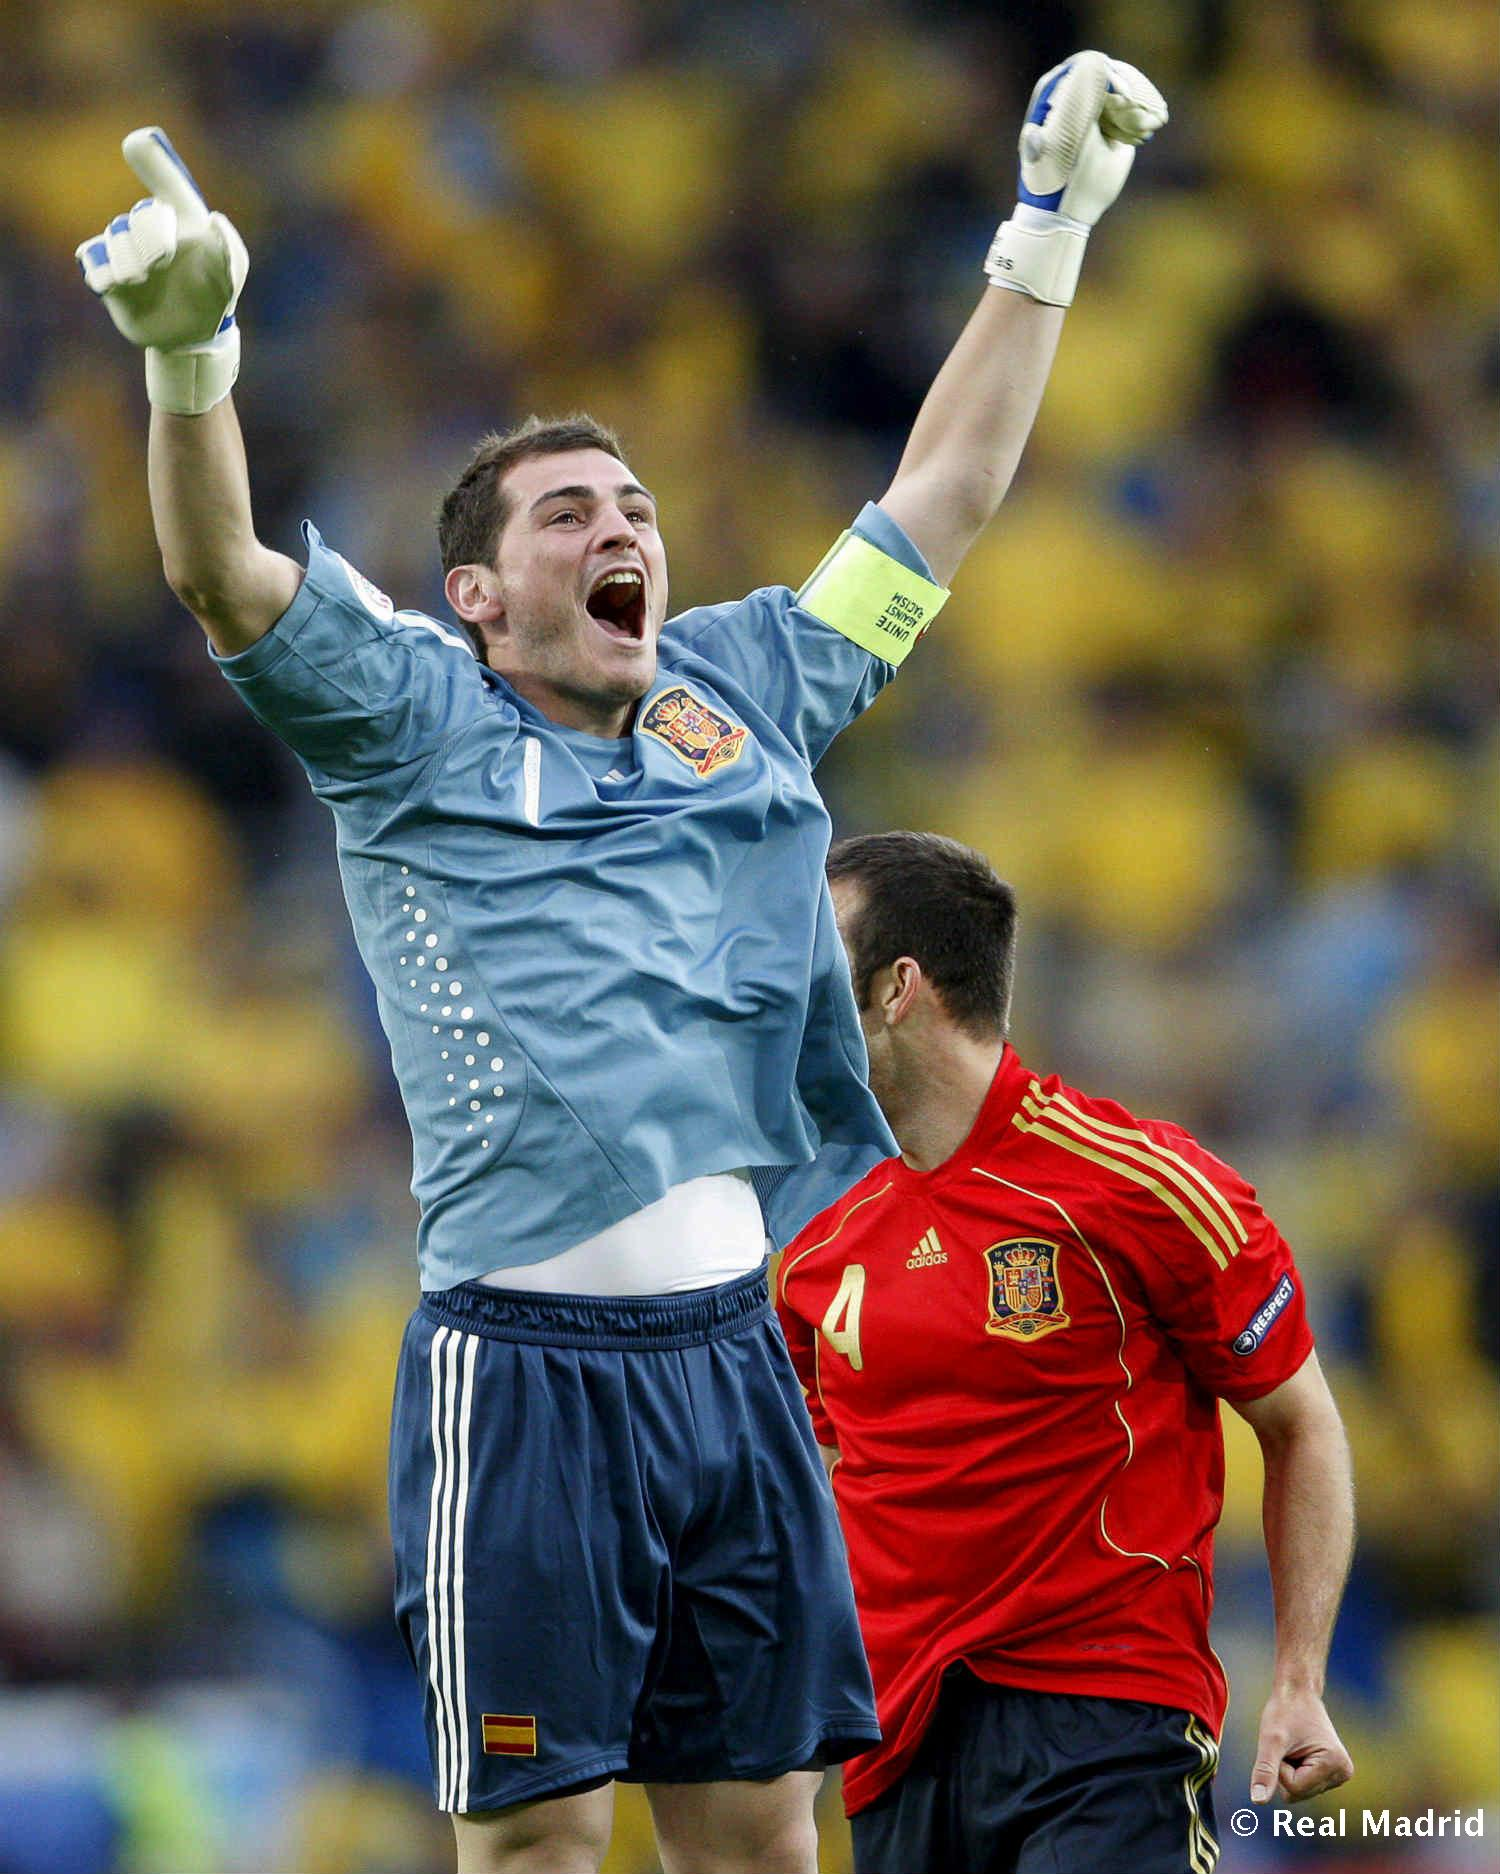 Real Madrid - Iker Casillas. Eurocopa 2008 - 27-01-2014